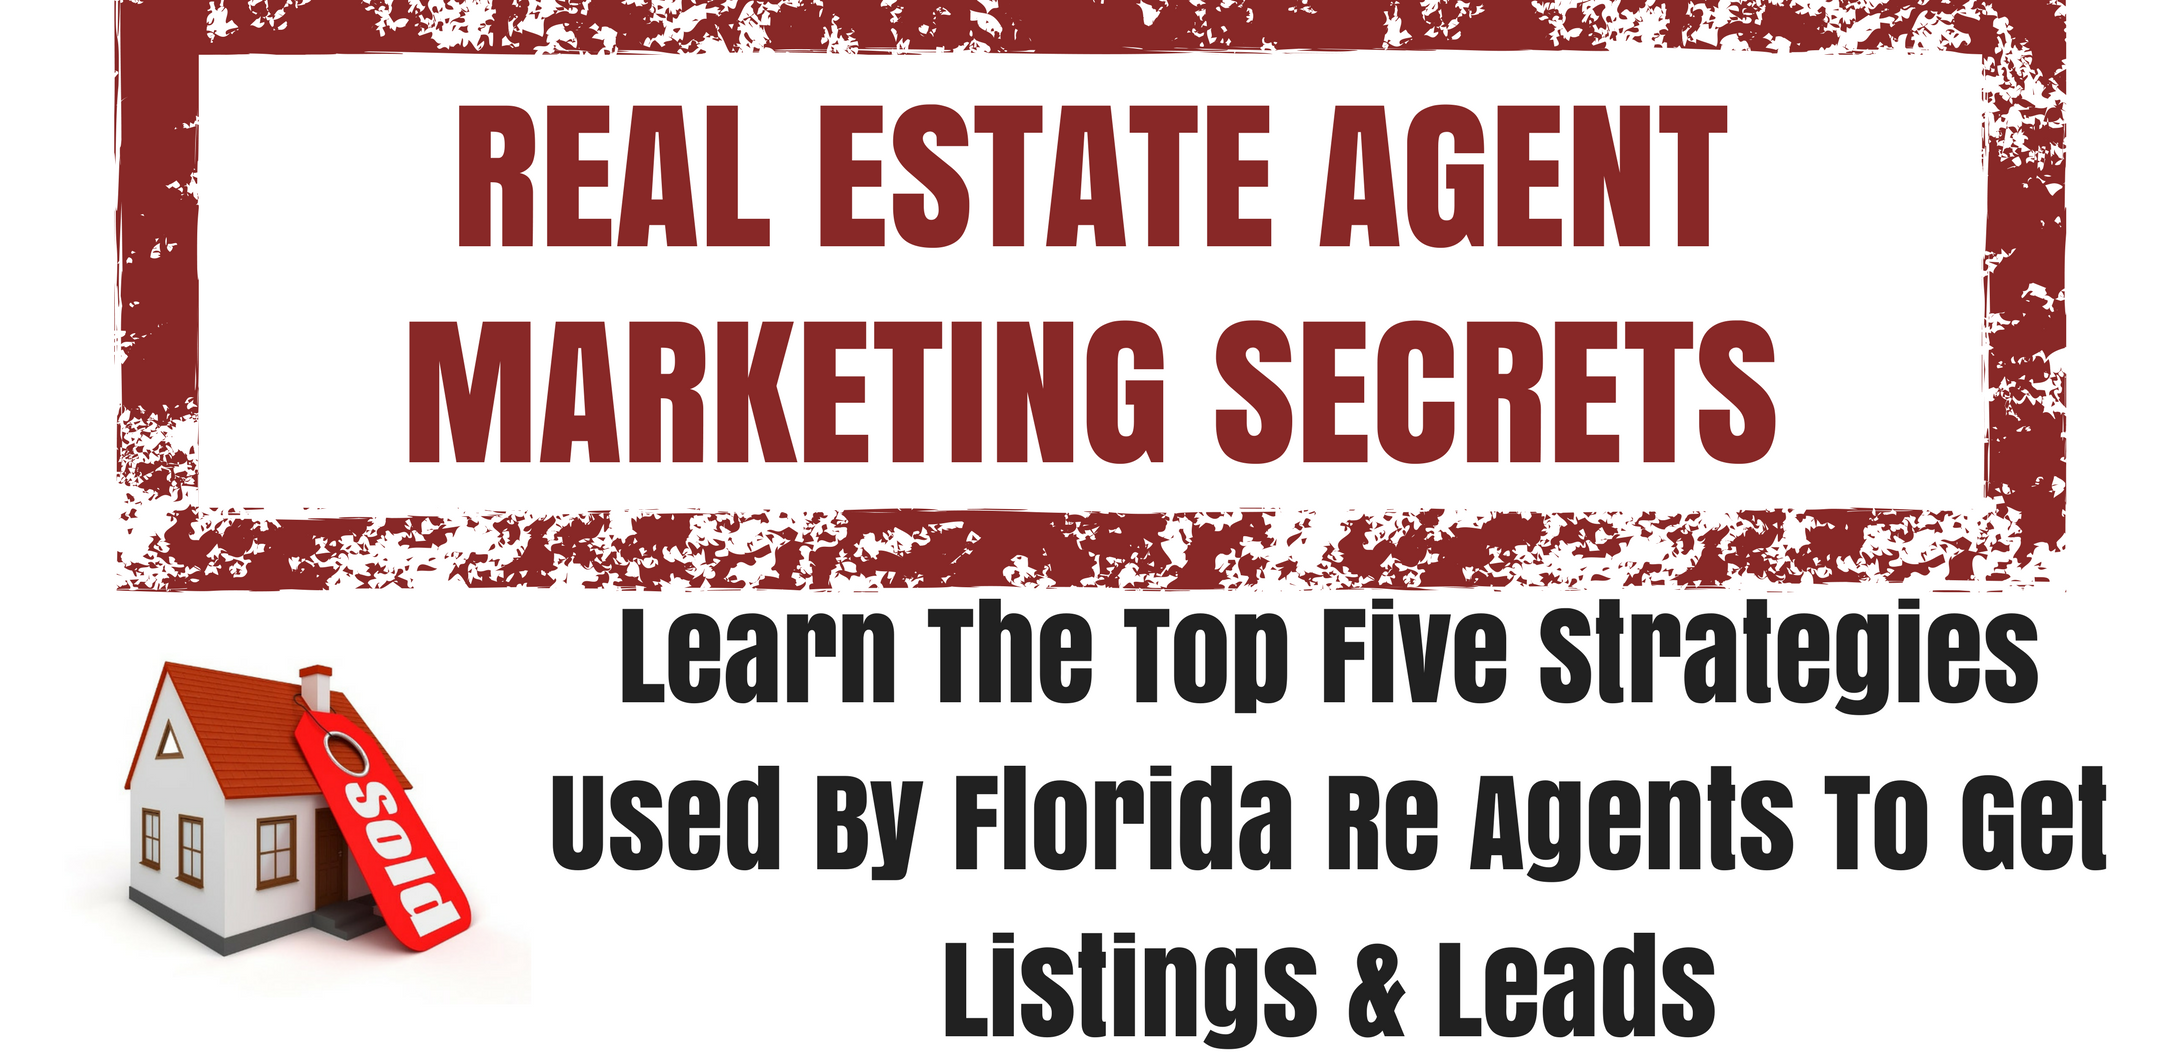 RSVP Jan 18 Free Real Estate Agent Training